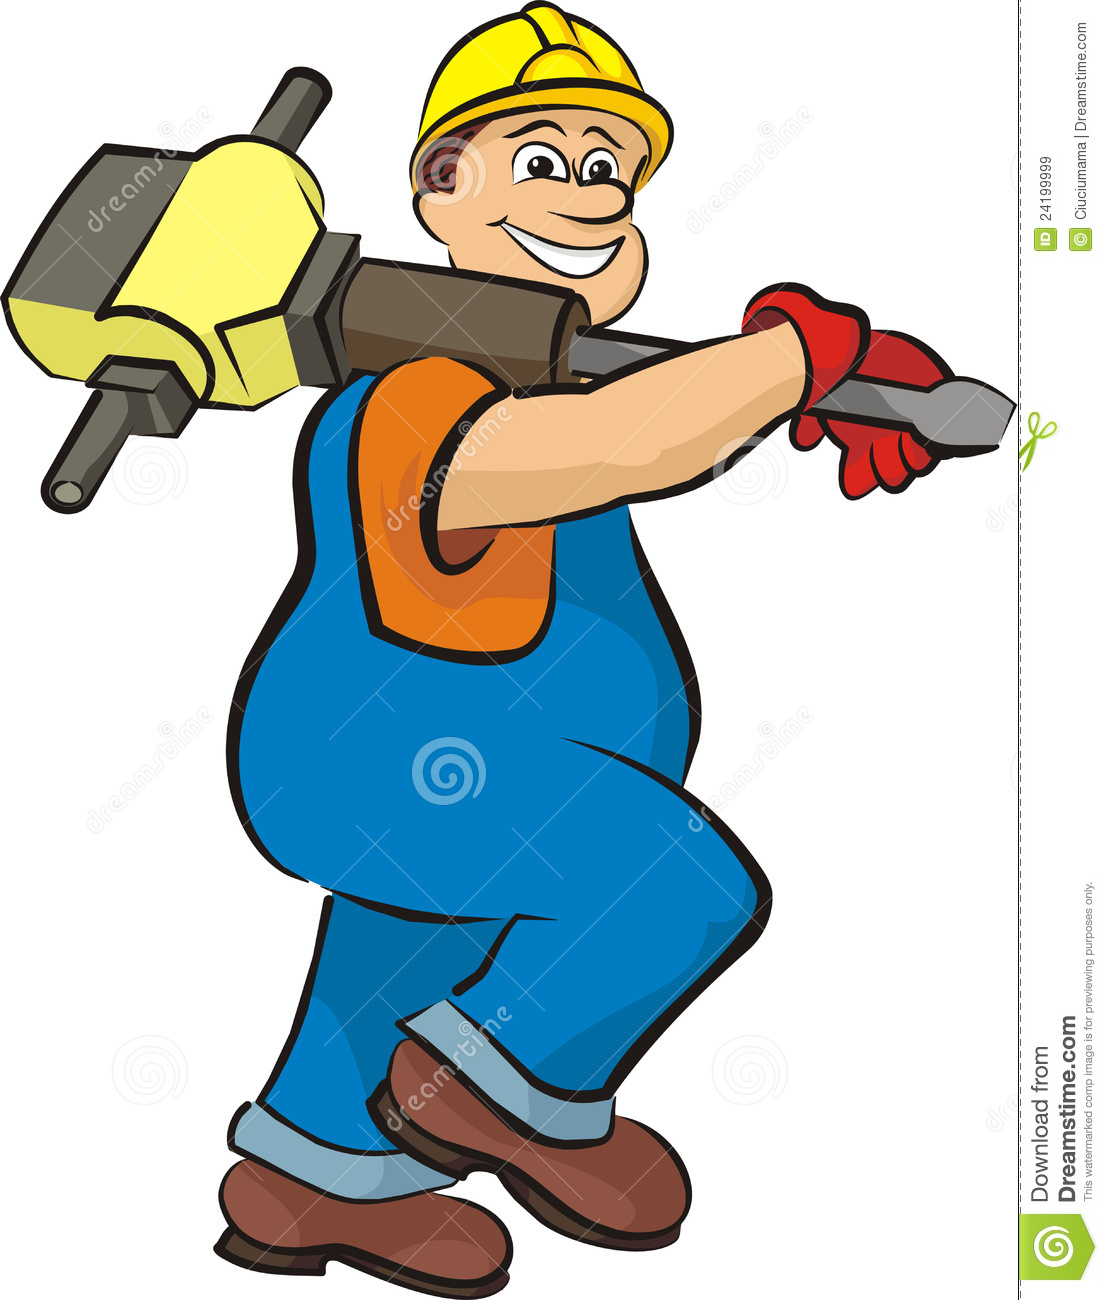 clipart worker - photo #15